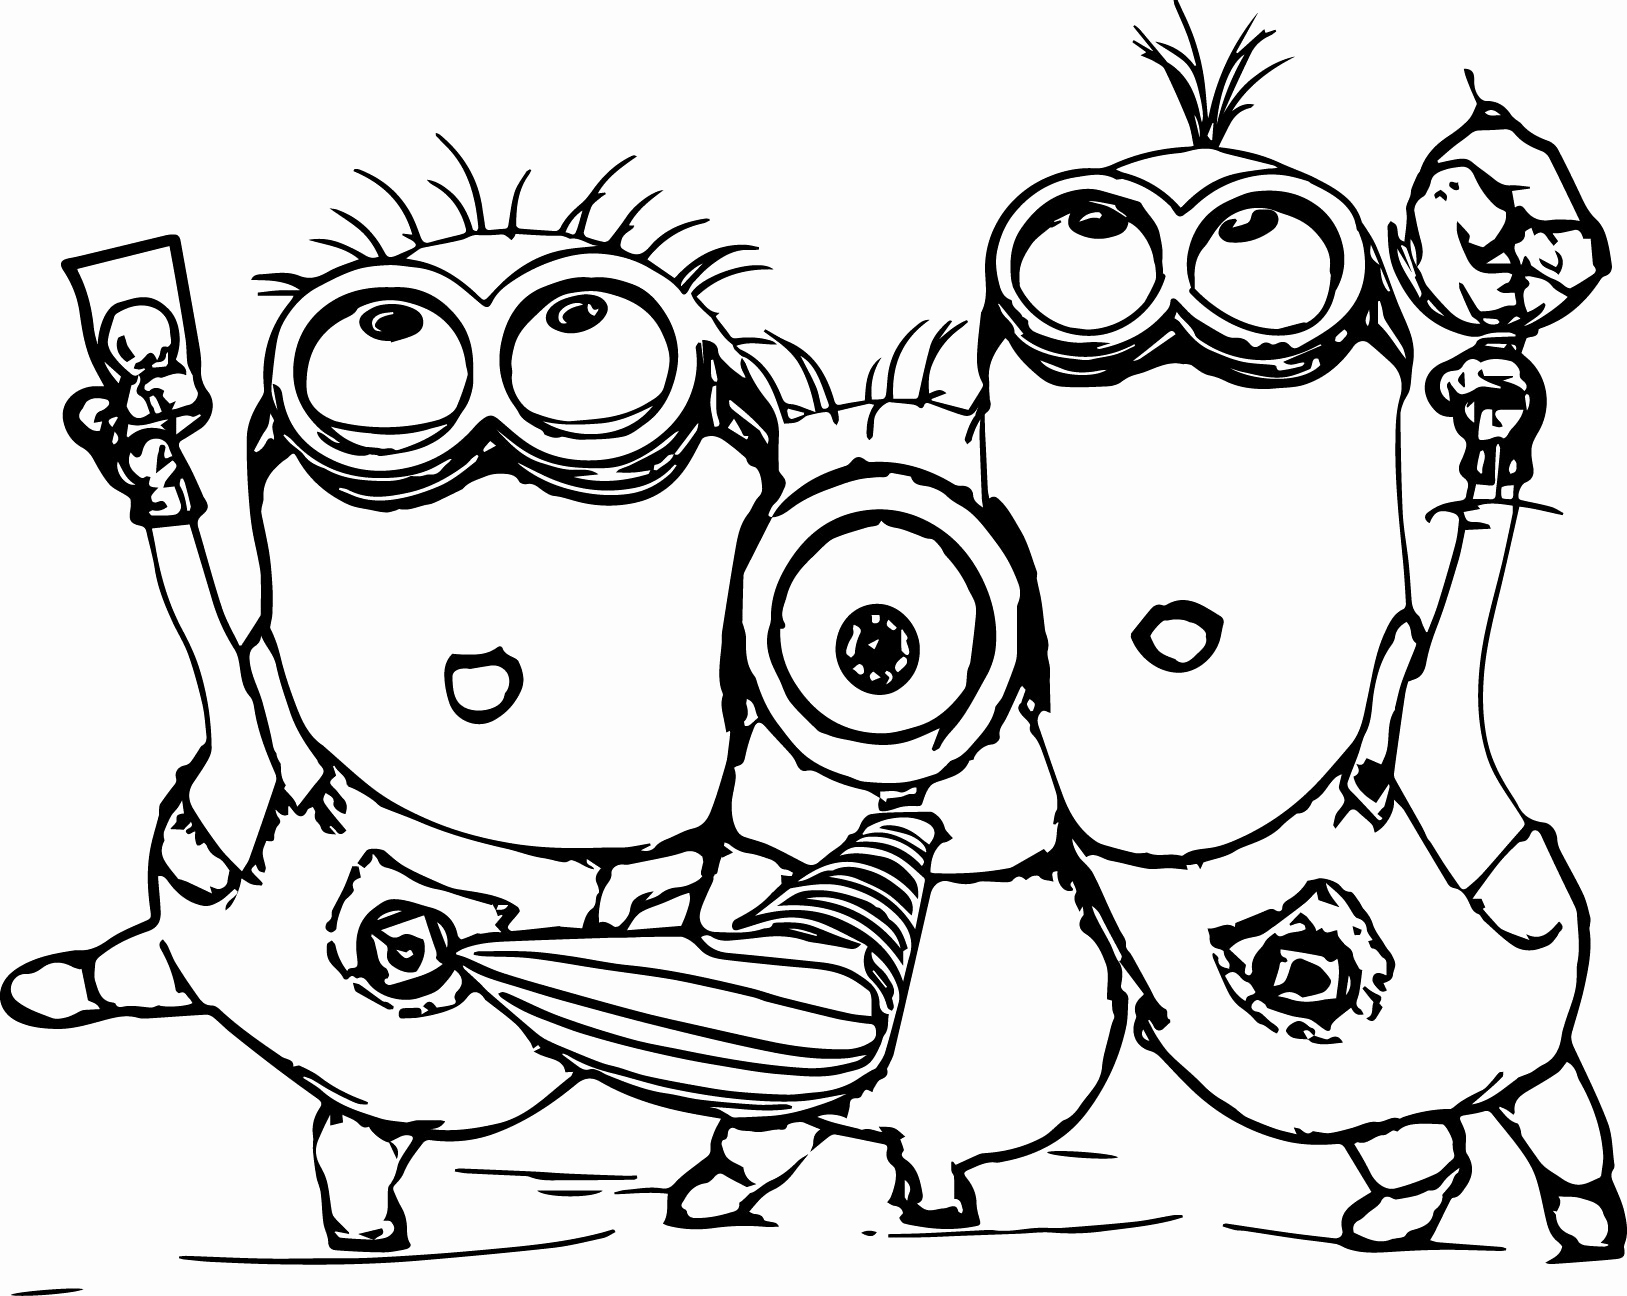 Free Printable Minion Coloring Pages  Gallery 7s - To print for your project